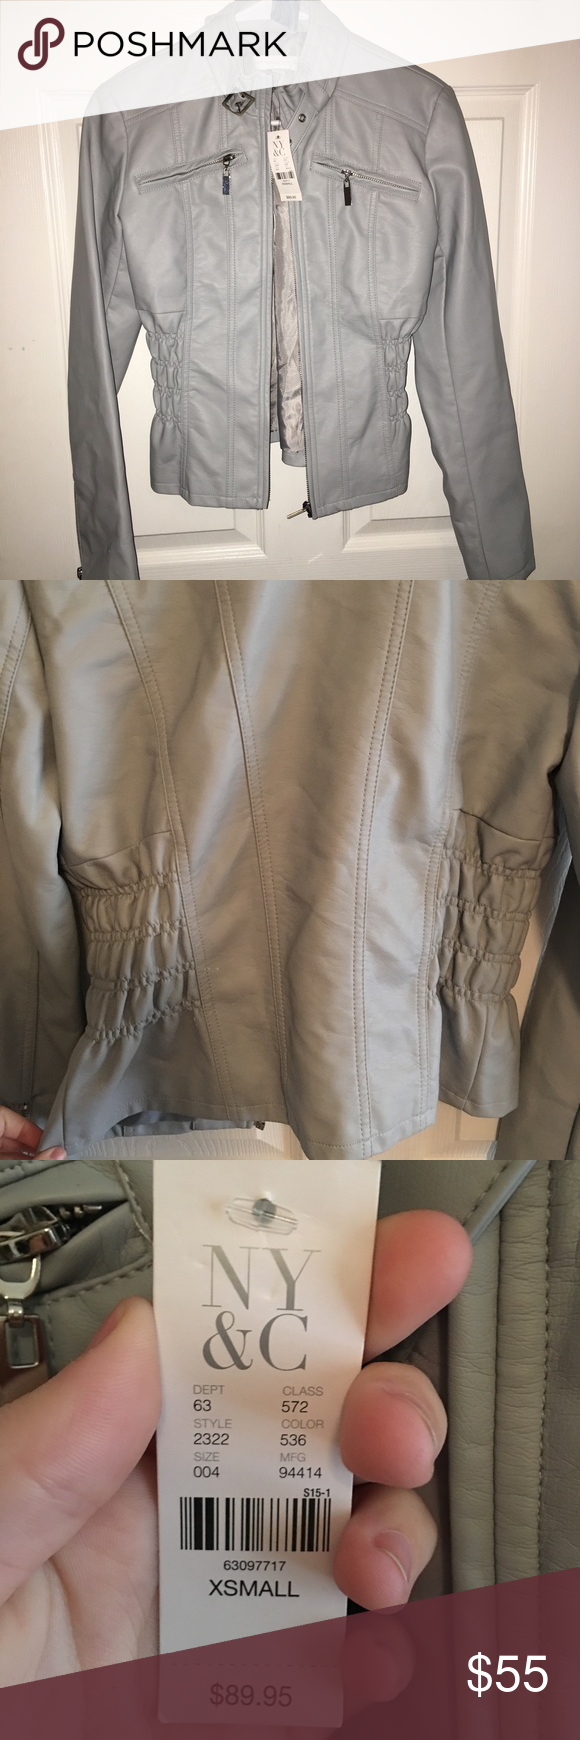 Ny&c leather jacket. Between baby blue and gray. Never worn, perfect condition. Kind of a cool stony color between gray and blue. Photos are pretty true to color. Ruched sides make this ultra slim fit. Buckle closure on neck looks bad ass. Zippered front closure, sleeves and breast pockets. All man made material. New York & Company Jackets & Coats